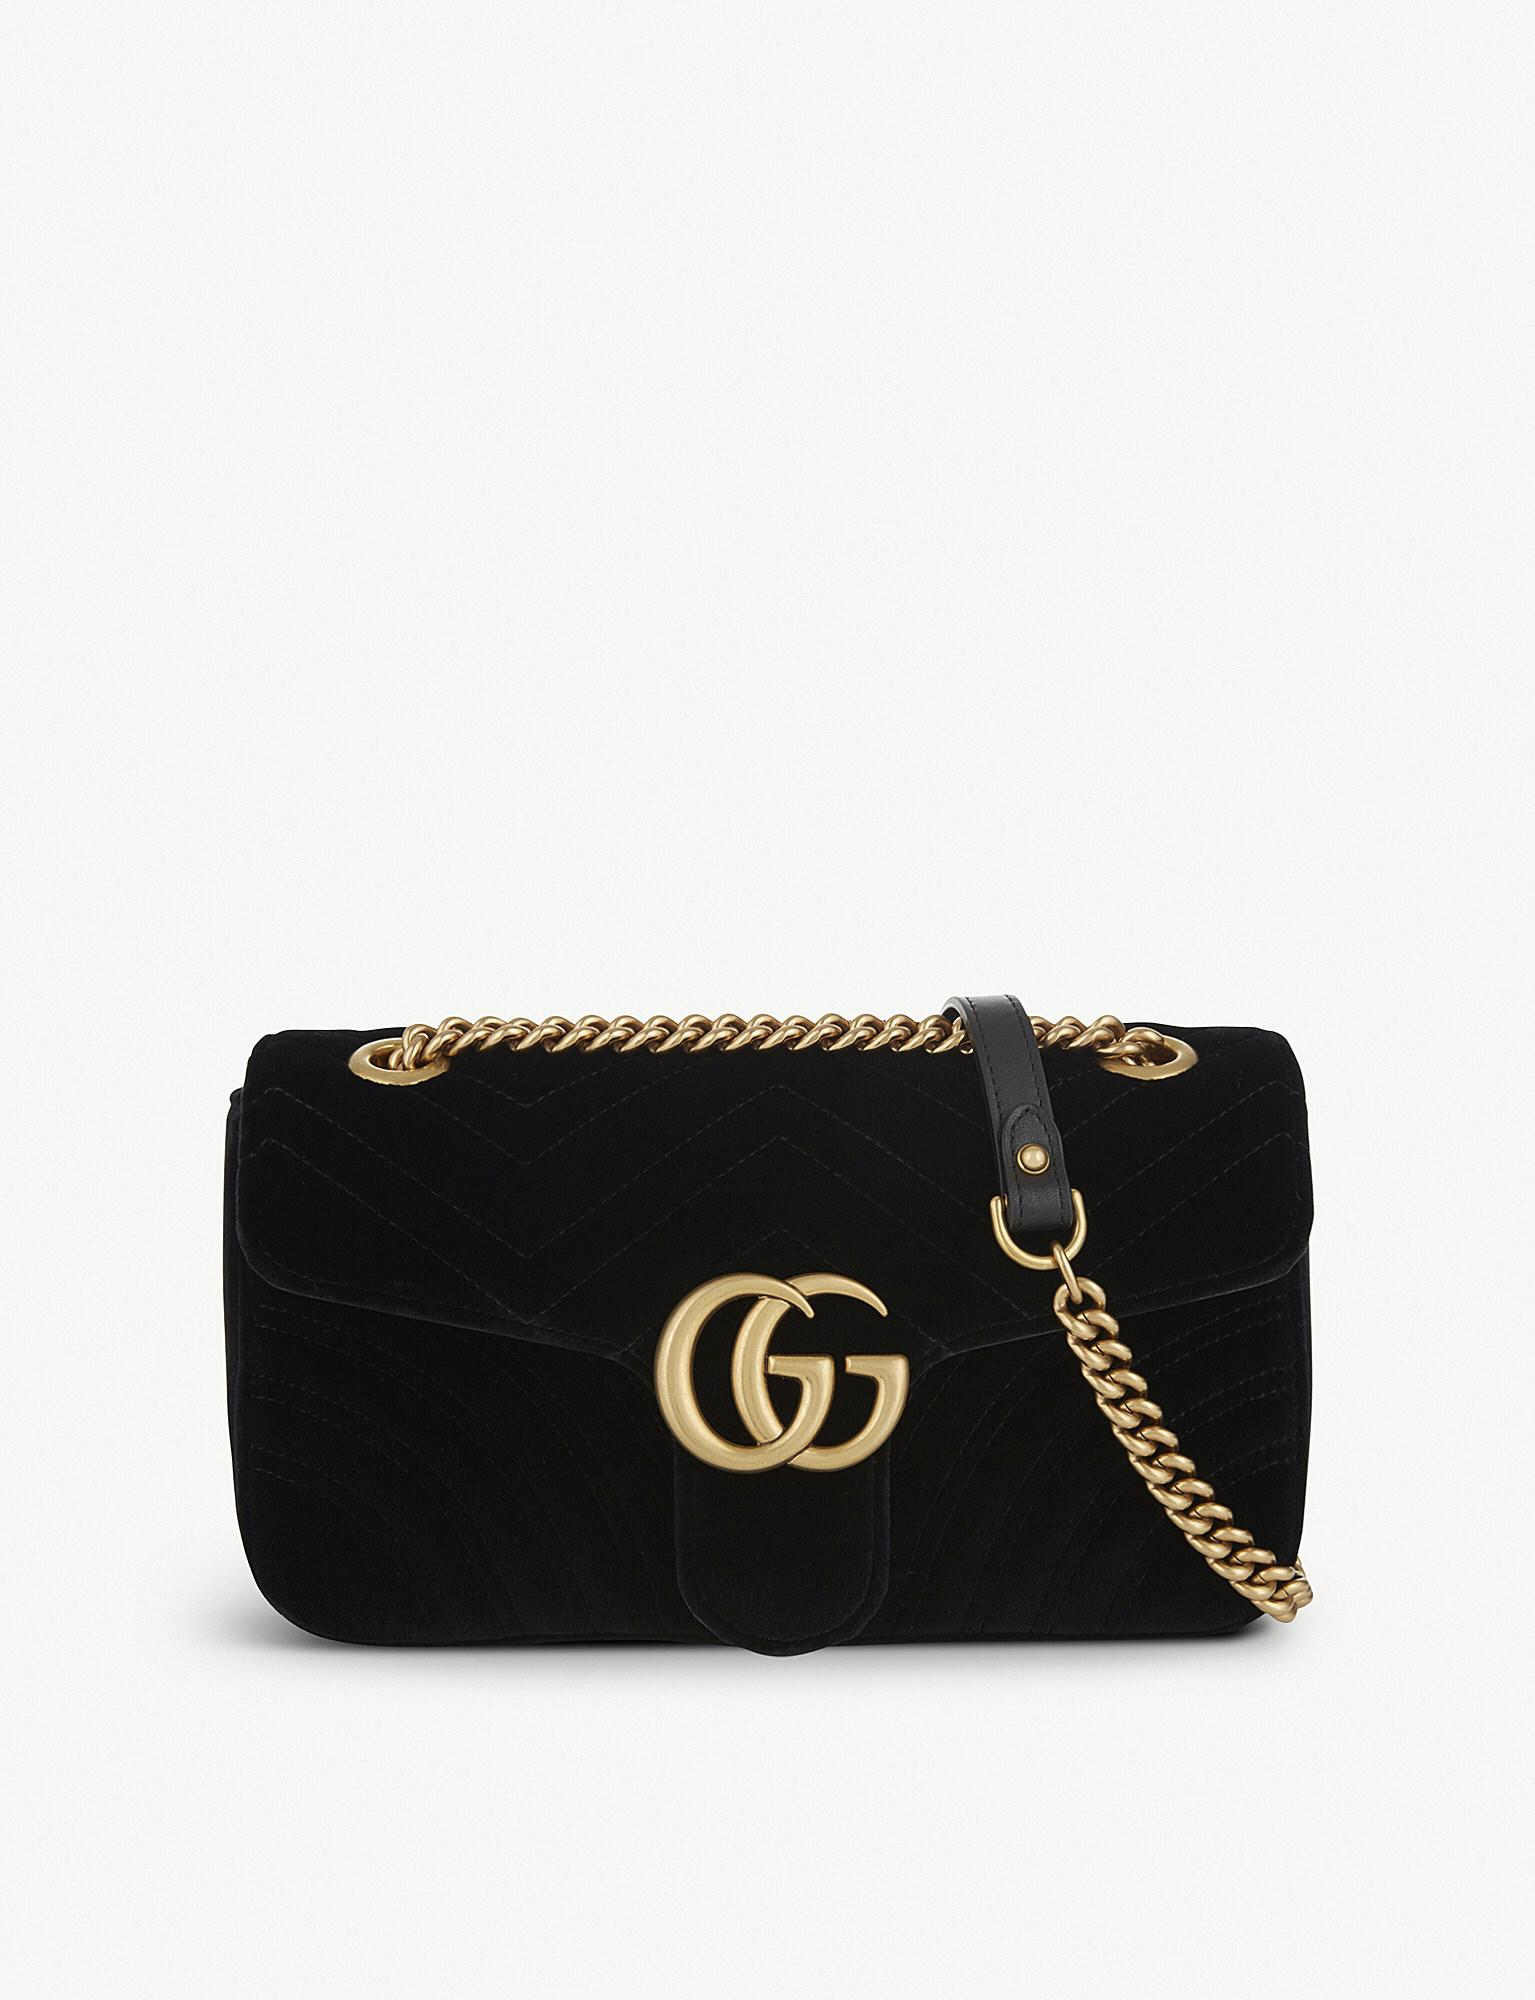 Lyst - Gucci GG Marmont Small Velvet Shoulder Bag in Black - Save 25% 68b7bb8299227